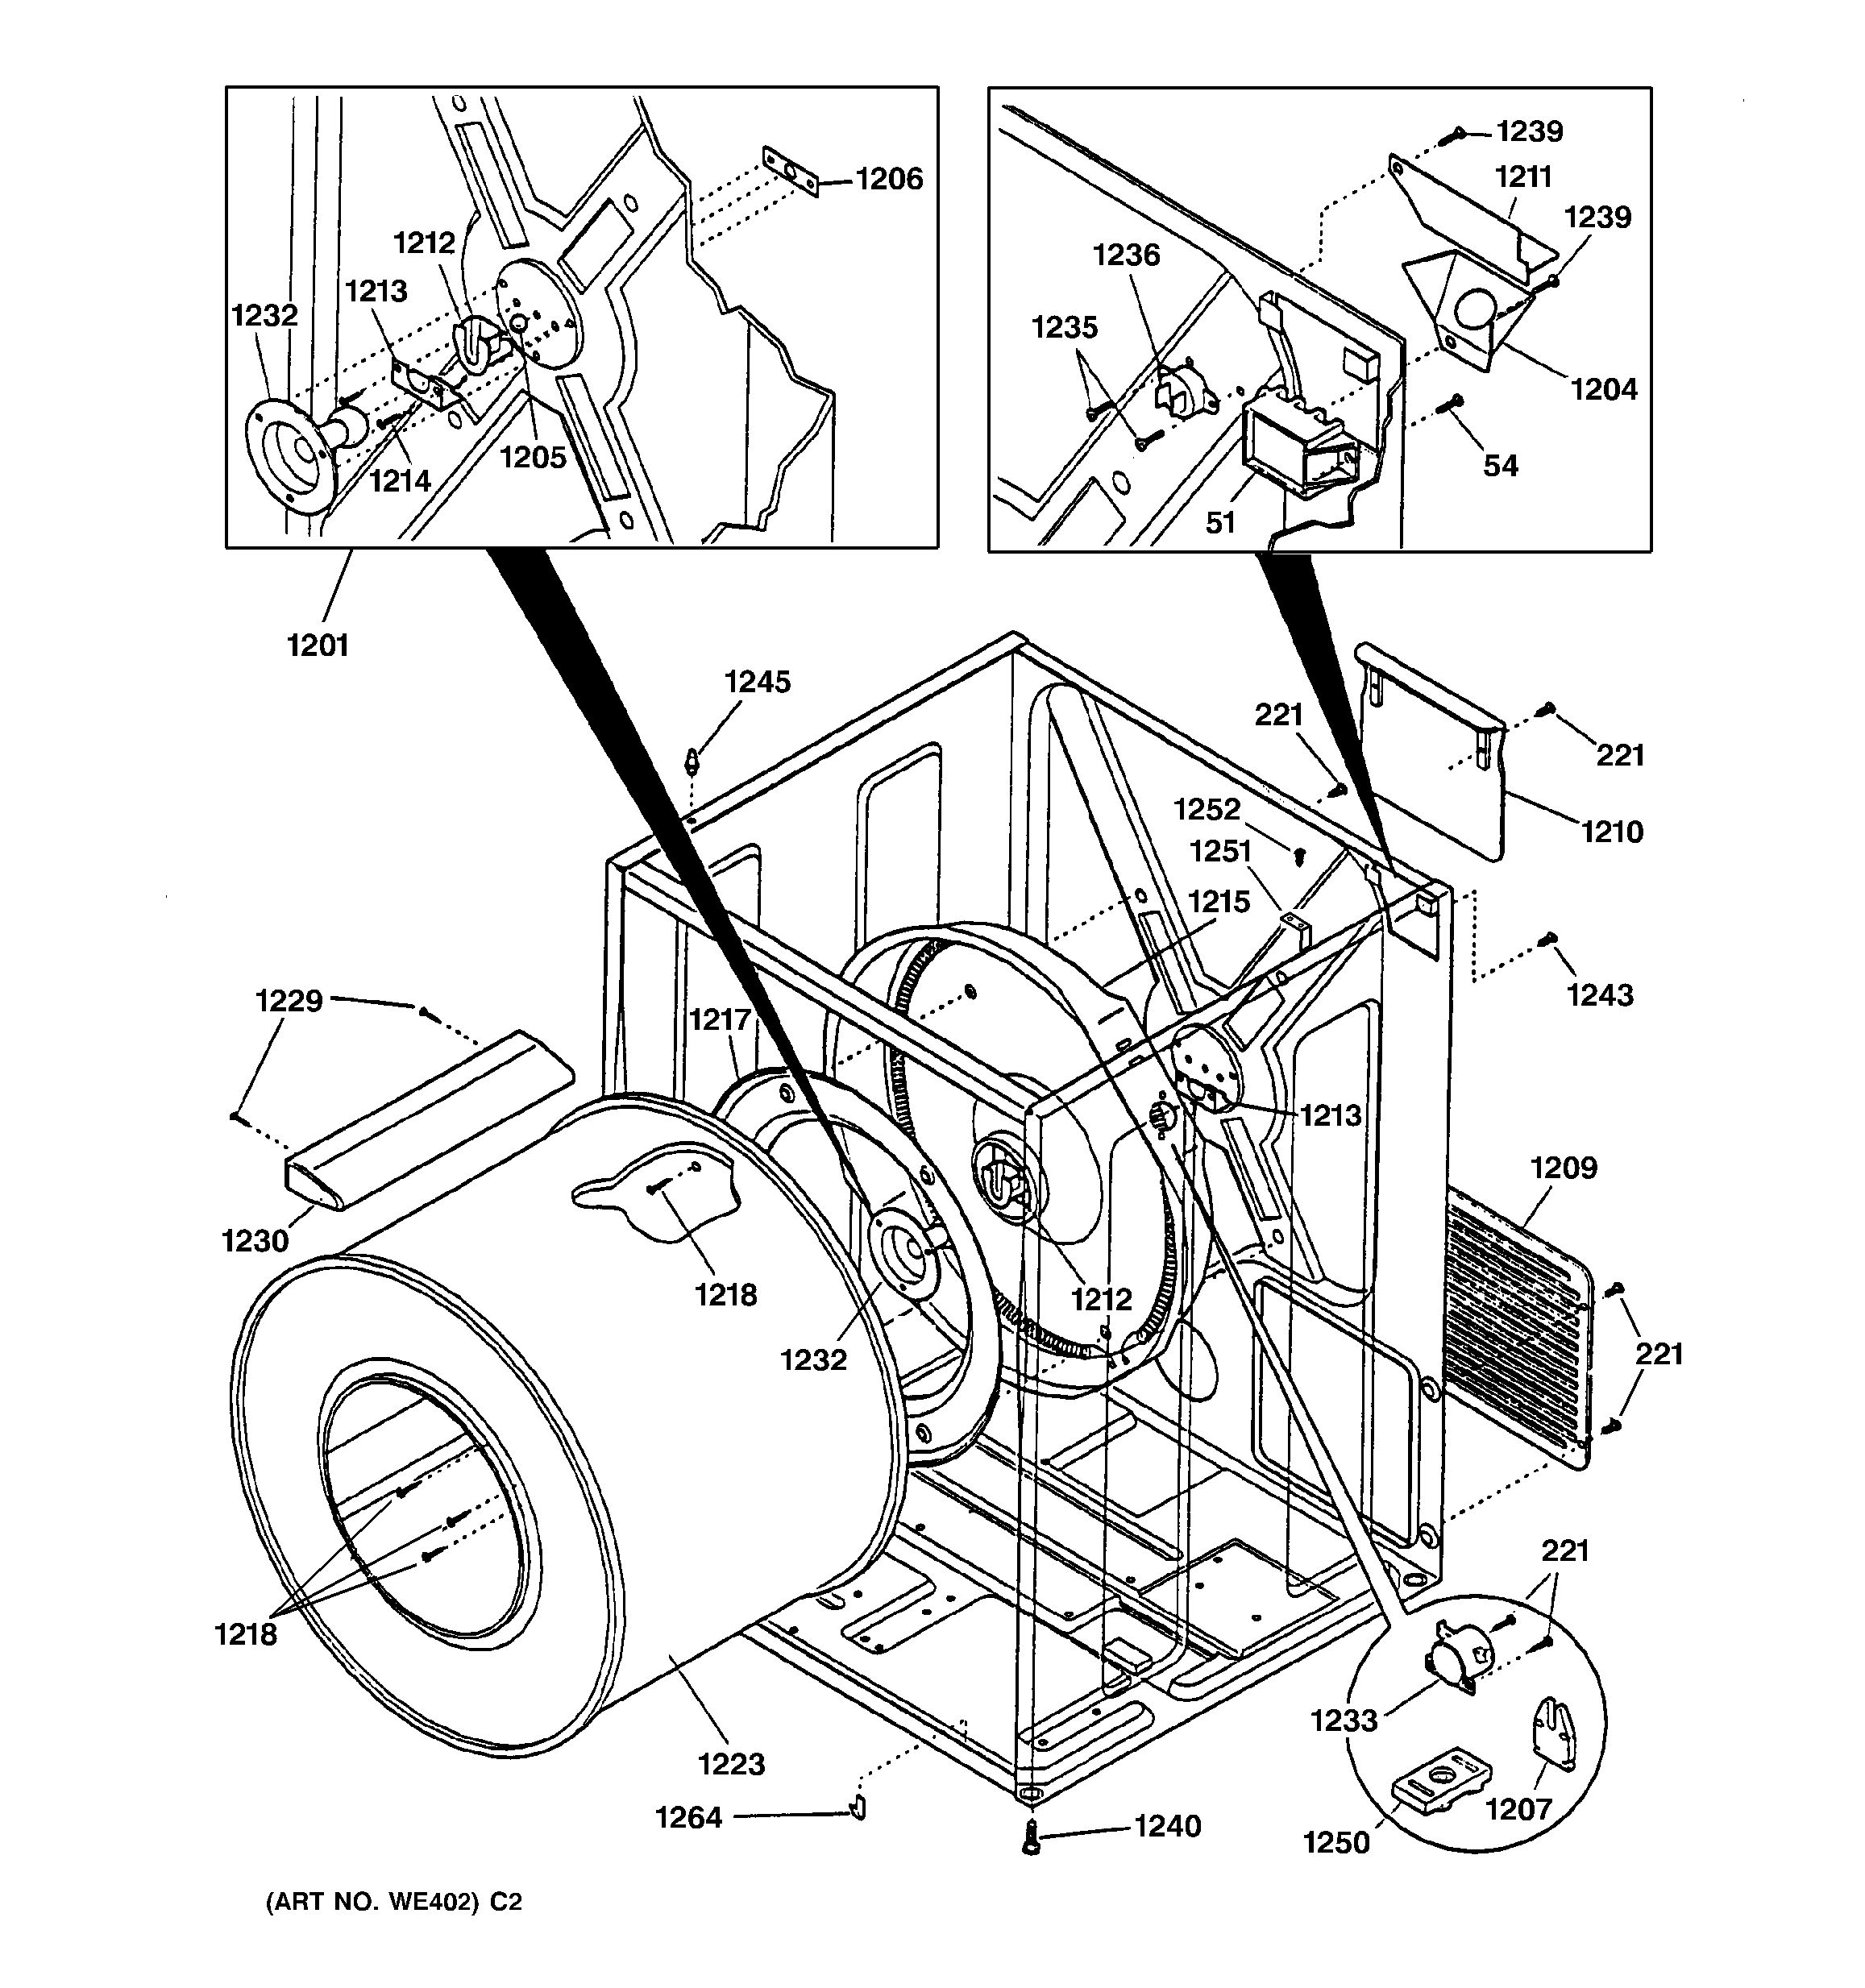 general electric refrigerator parts diagram jeep liberty front suspension assembly view for cabinet and drum dcd330ey0ac